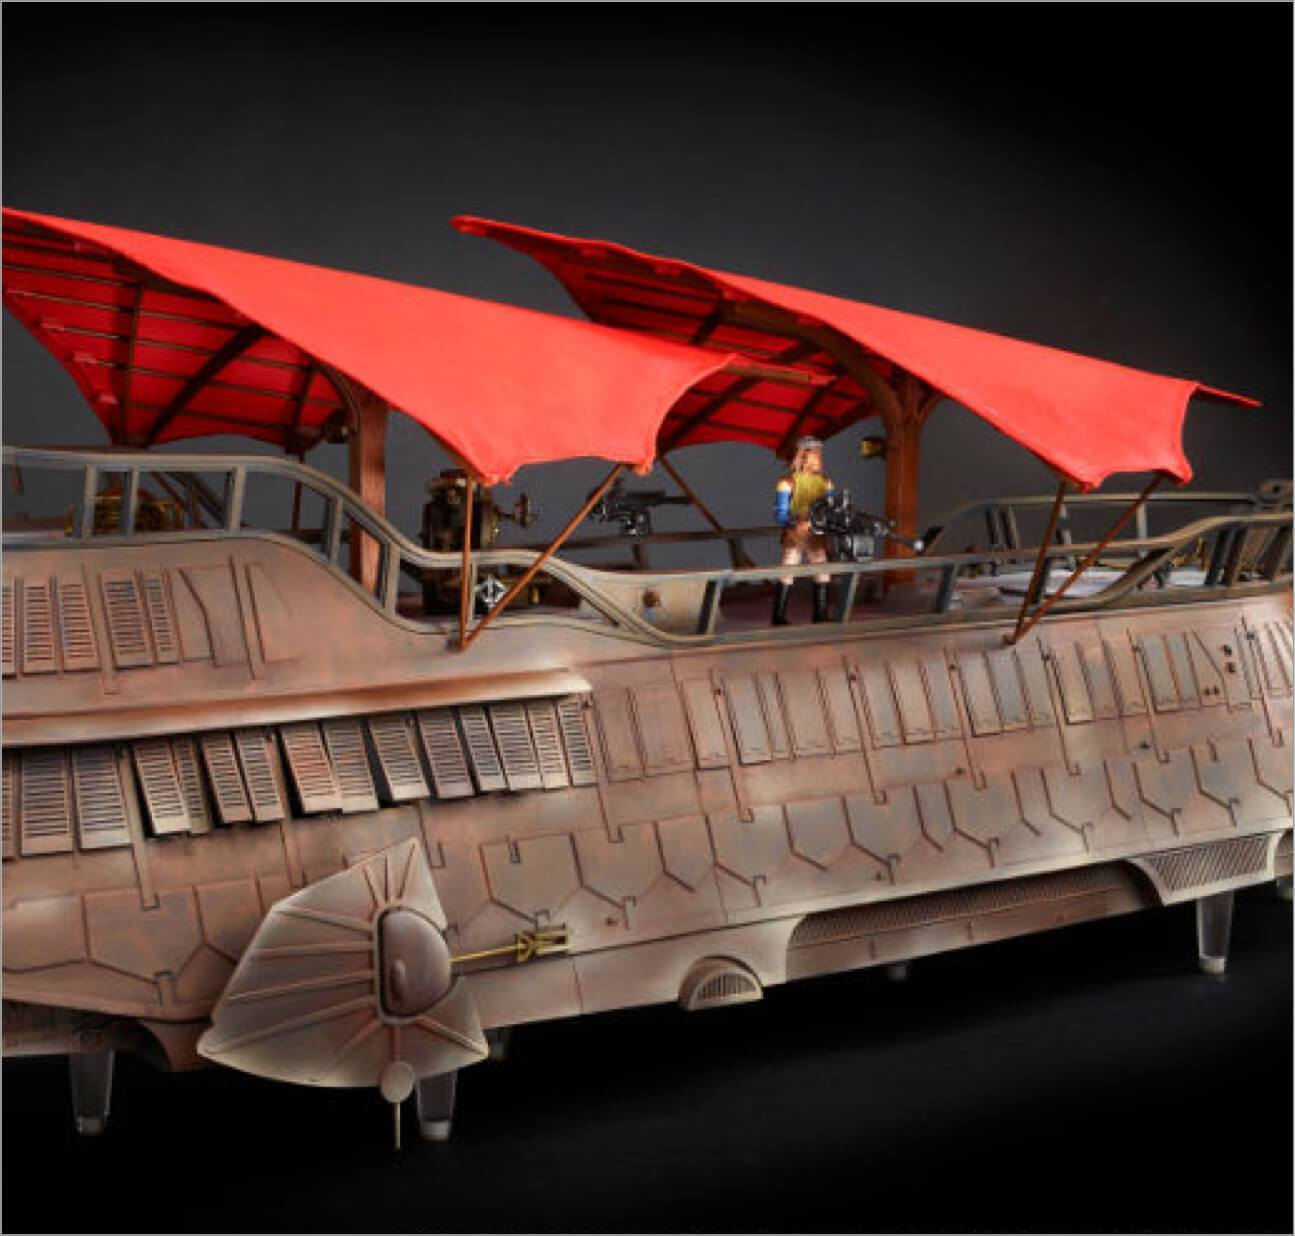 Star Wars Jabba's Sail Barge action figures